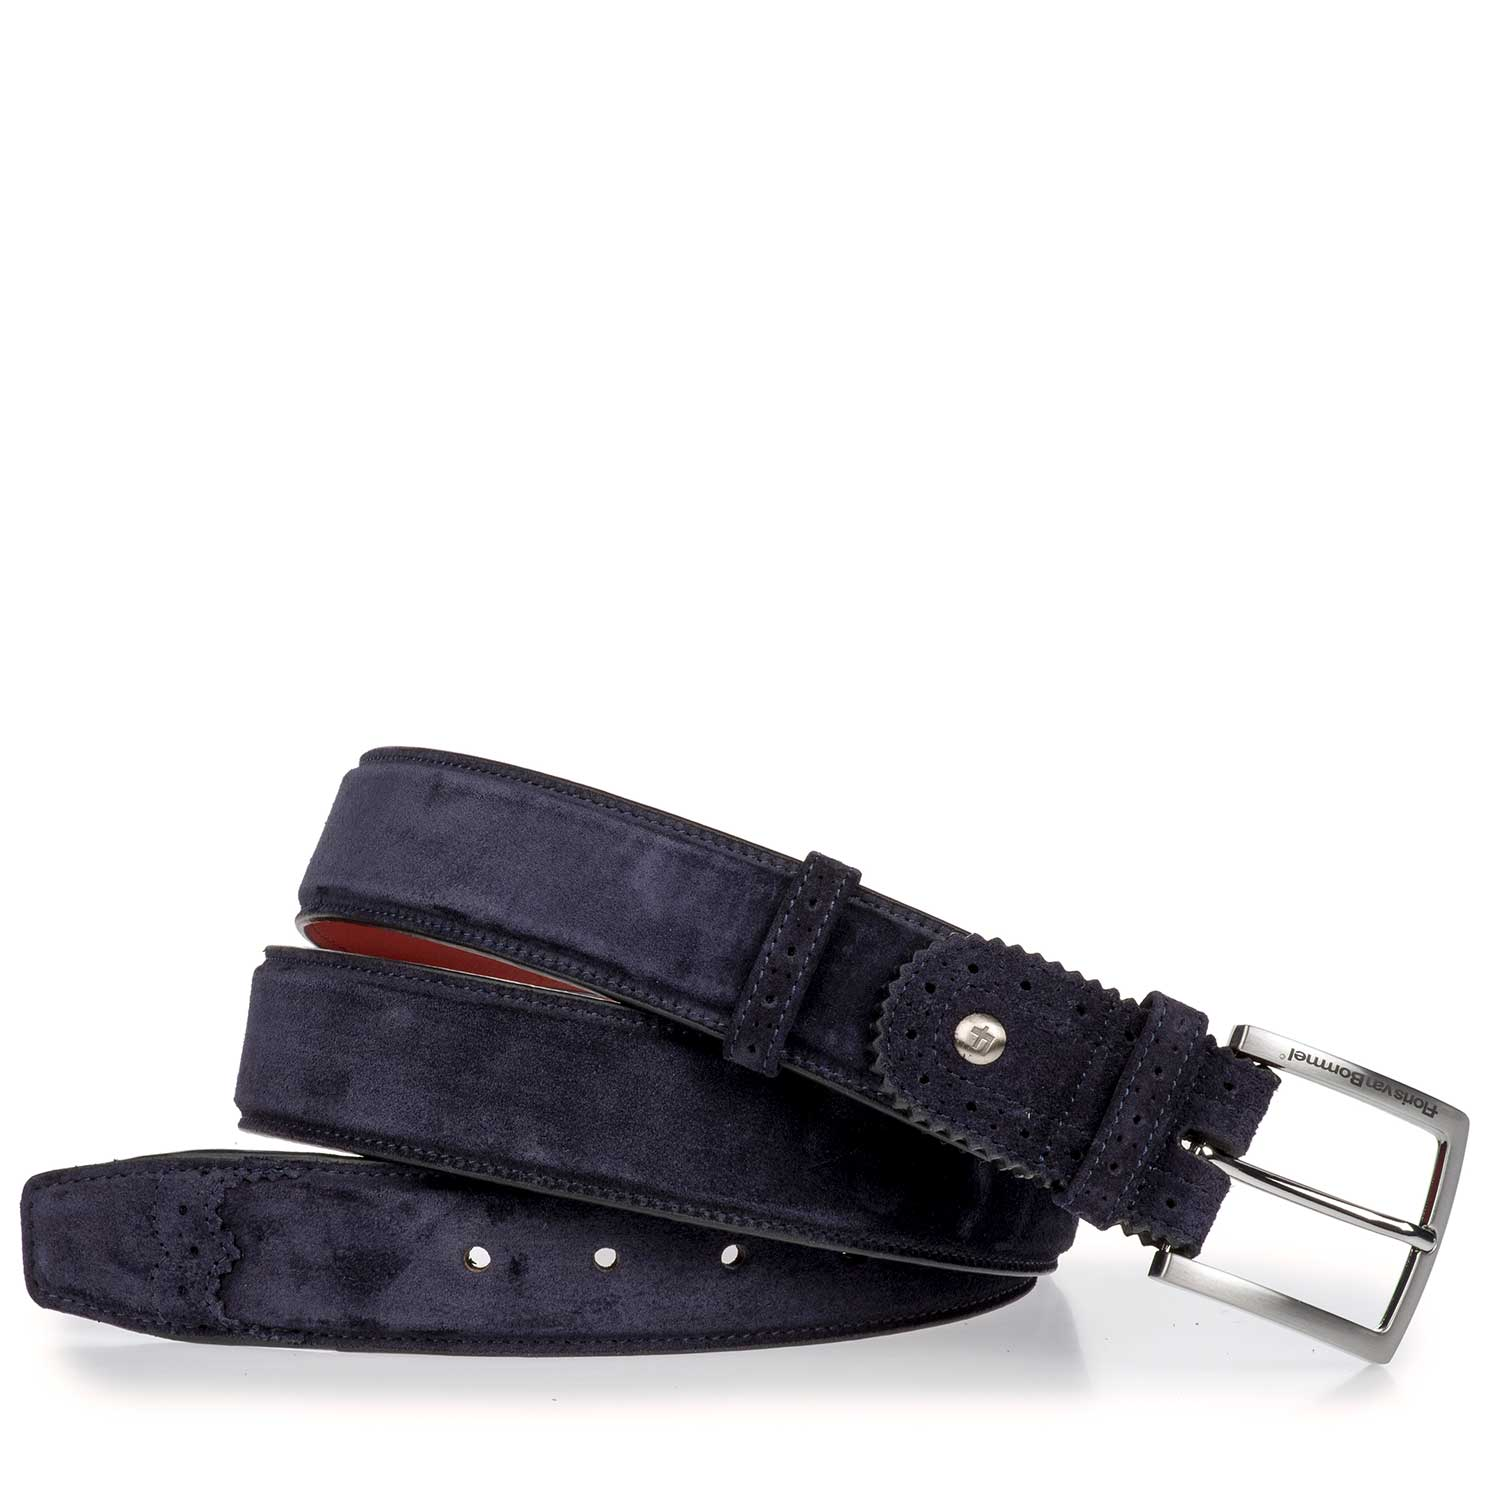 75171/16 - Blue suede leather belt with brogue perforations